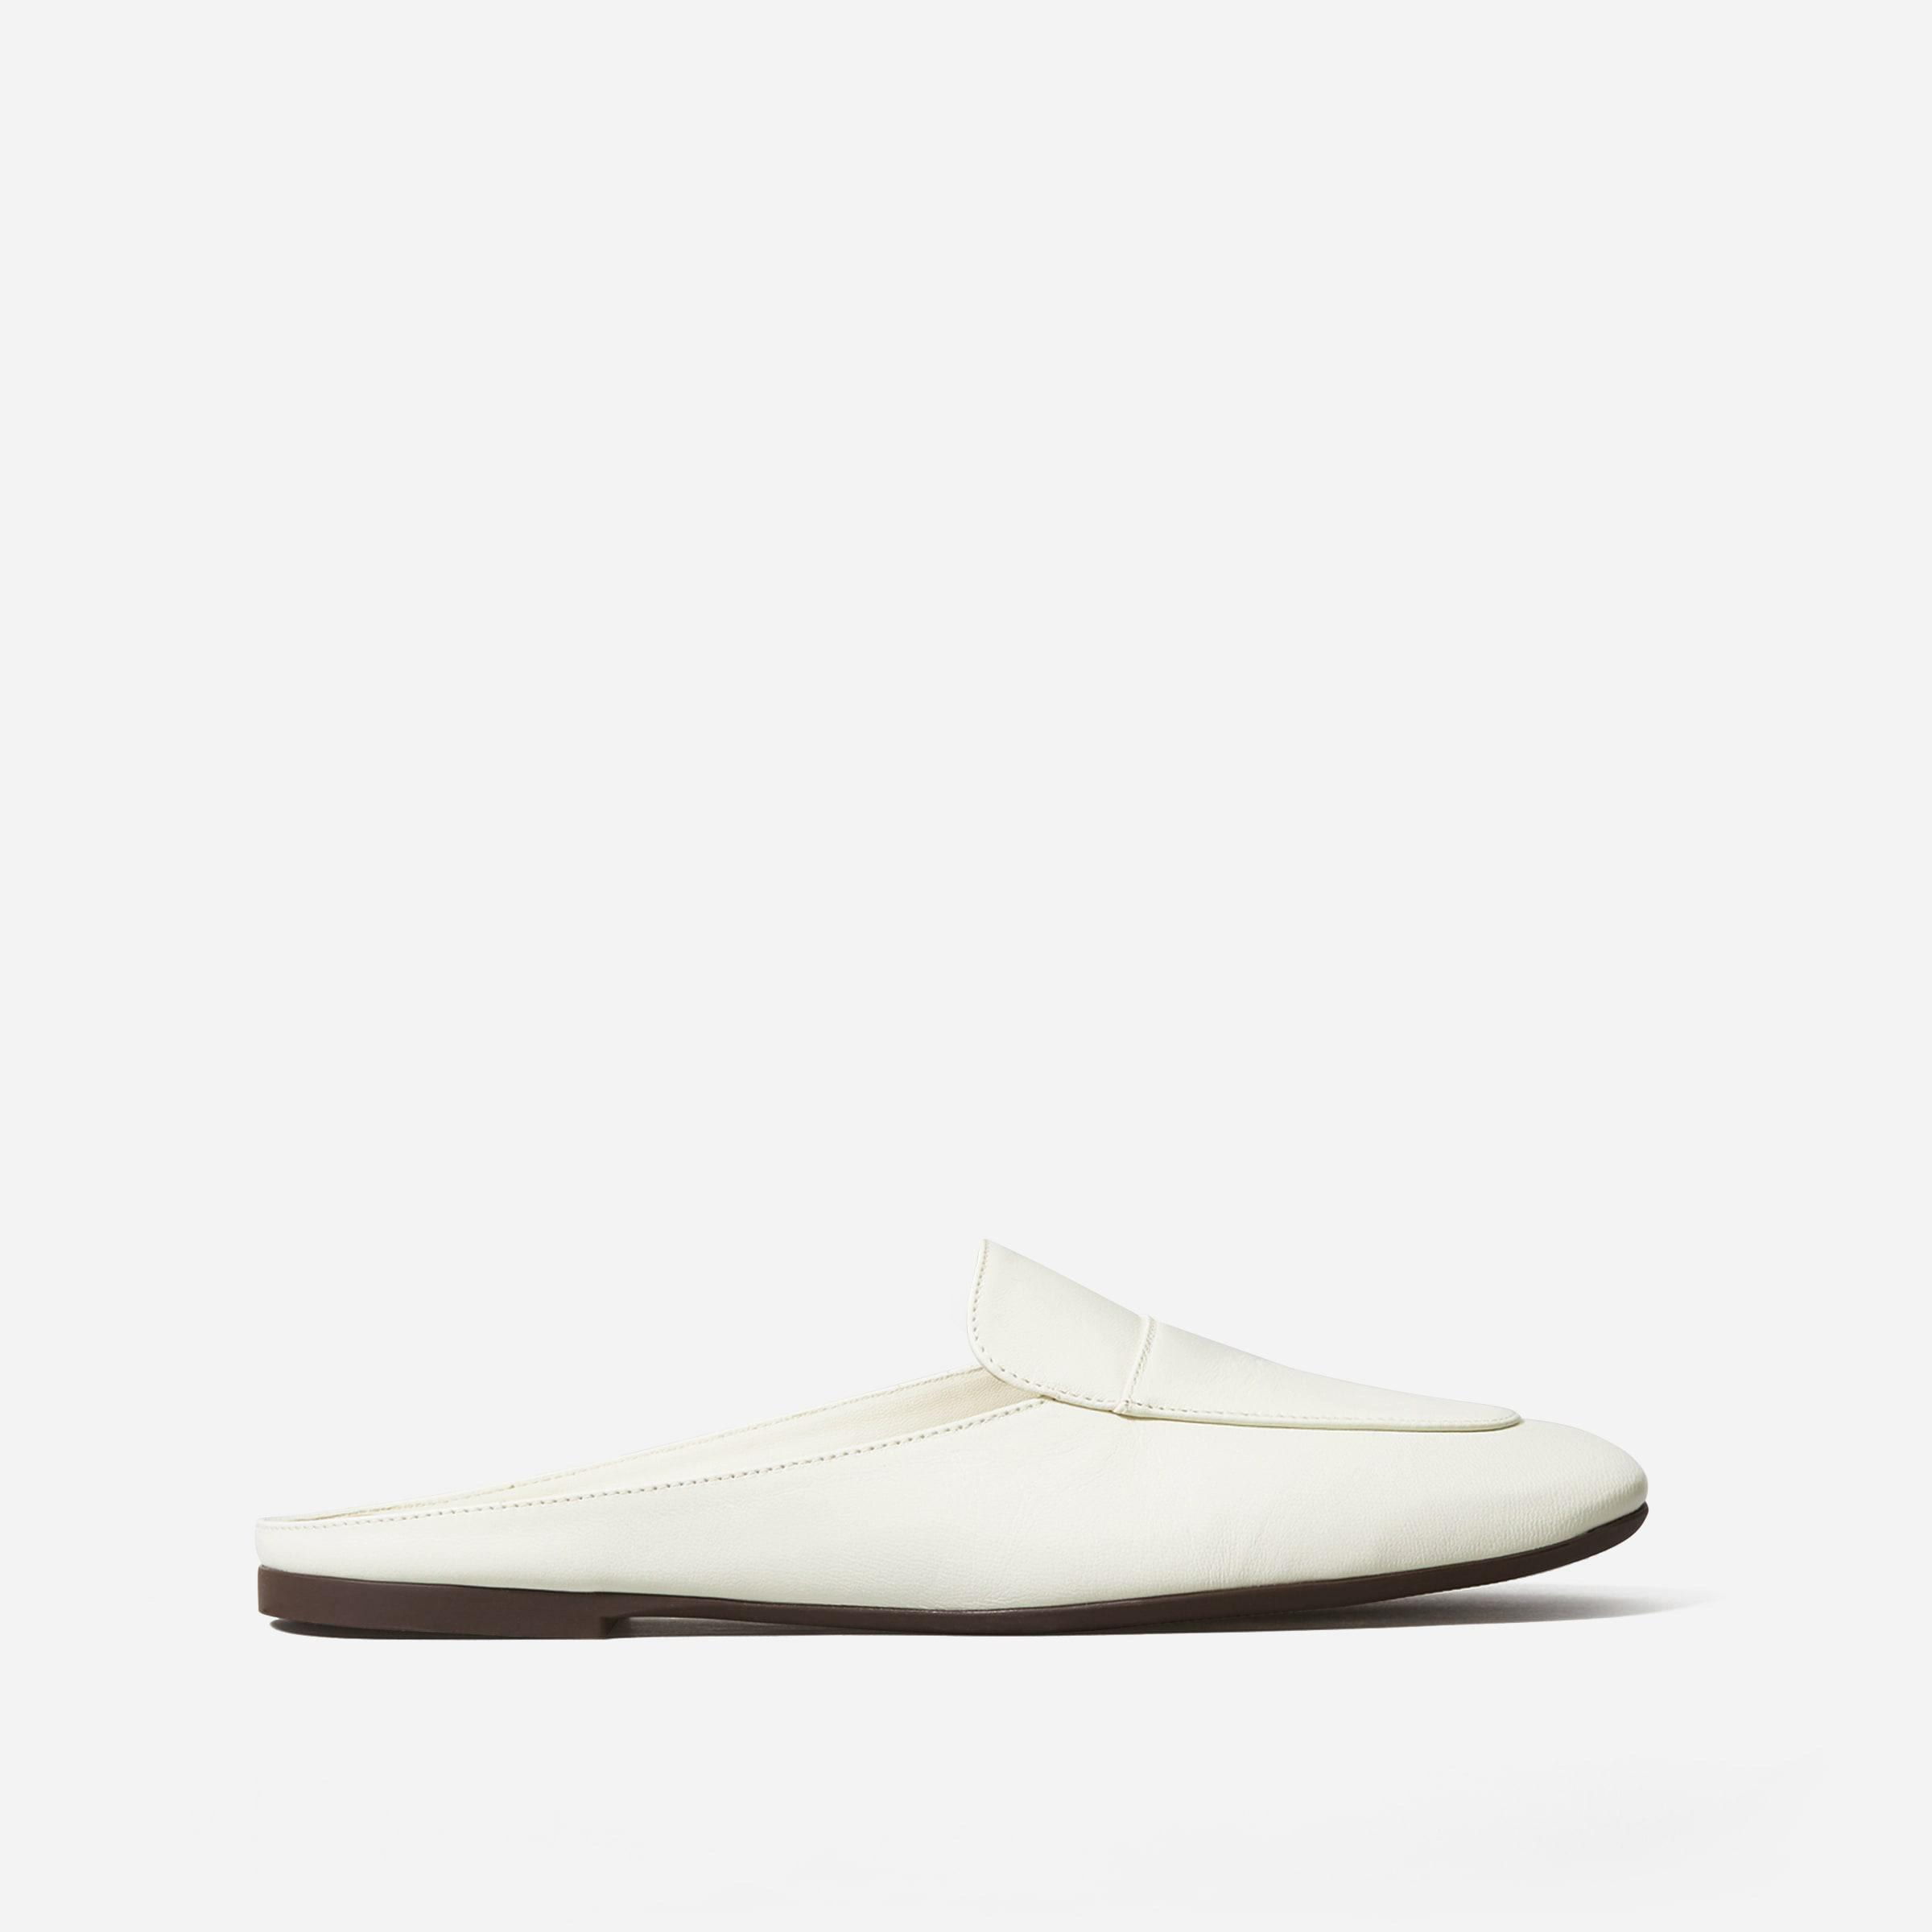 The Day Loafer Mule